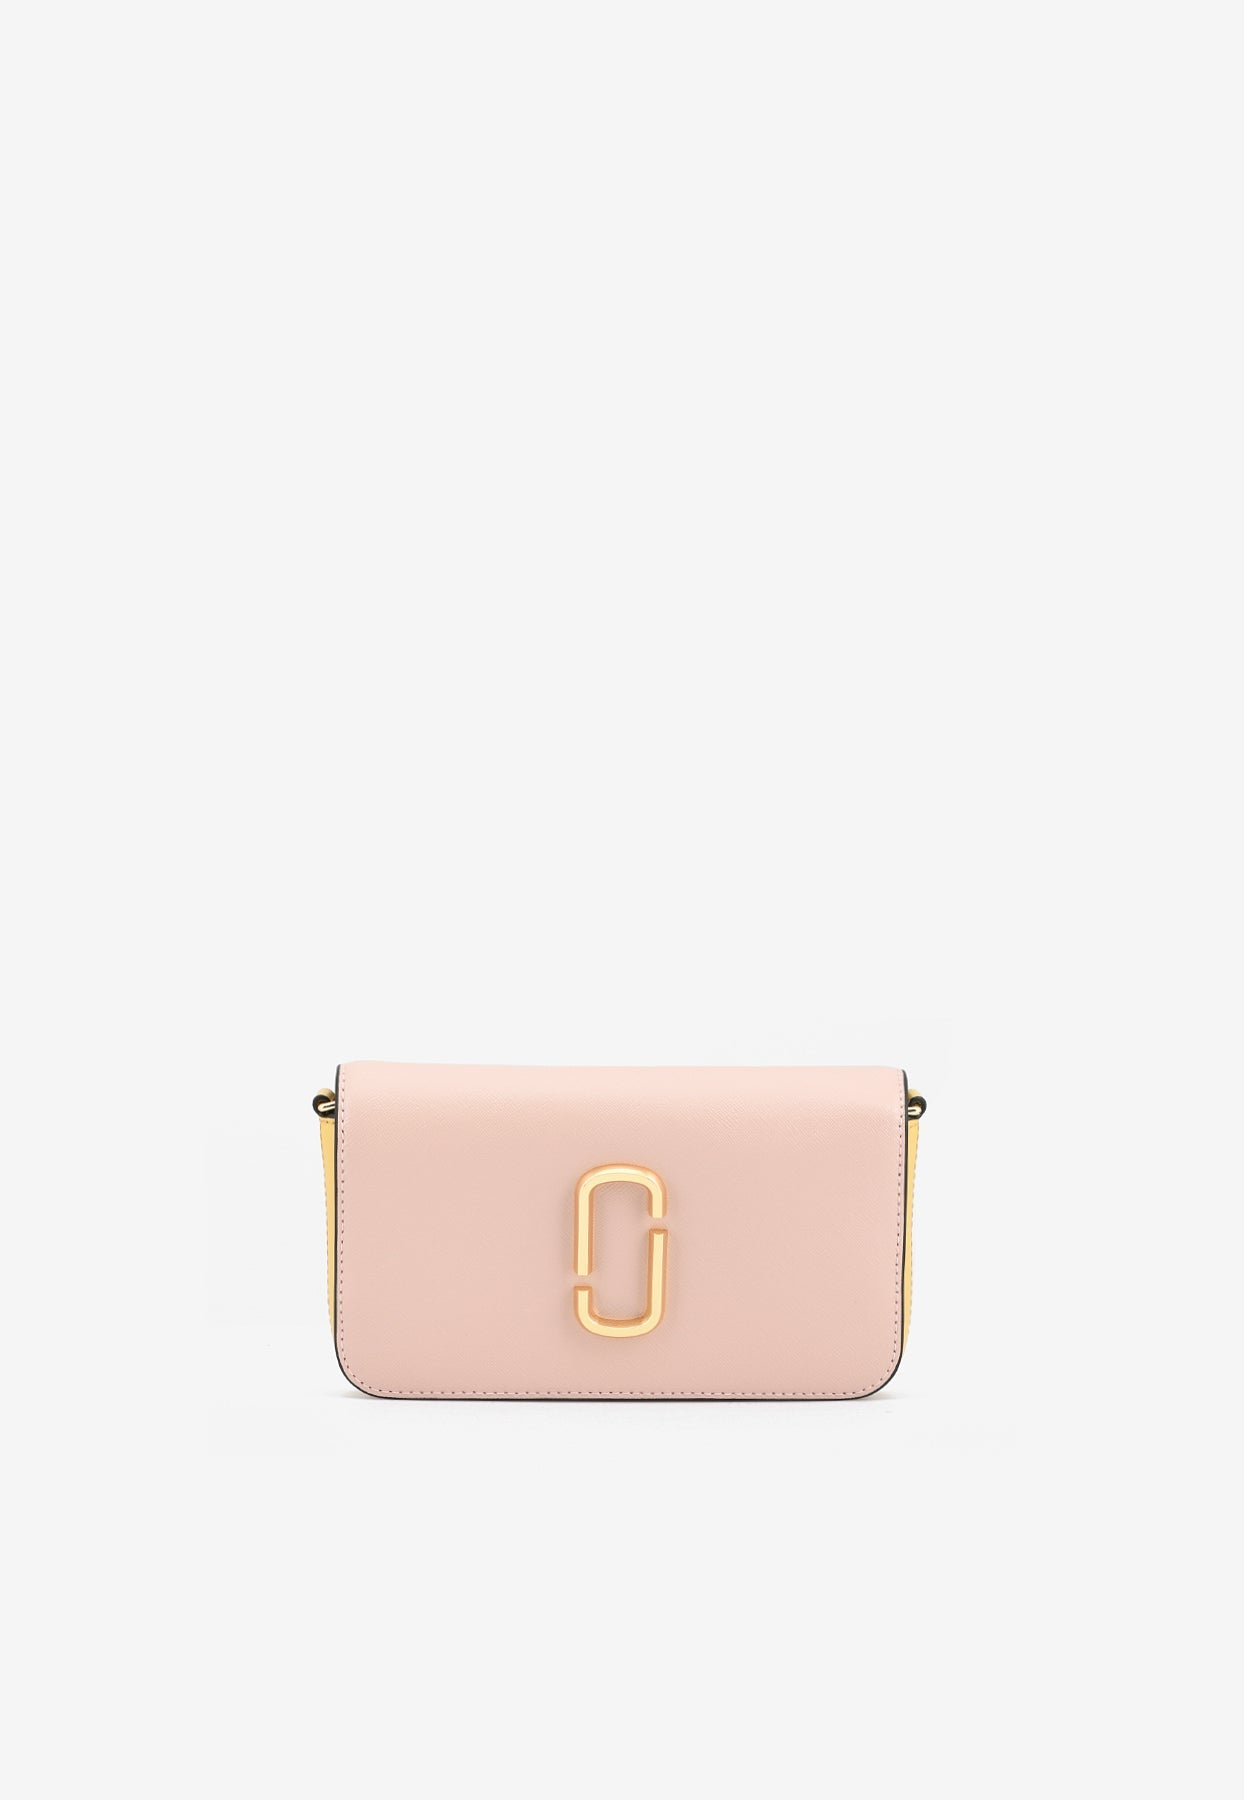 Marc Jacobs The Snapshot Chain Clutch In Saffiano Leather In Pink